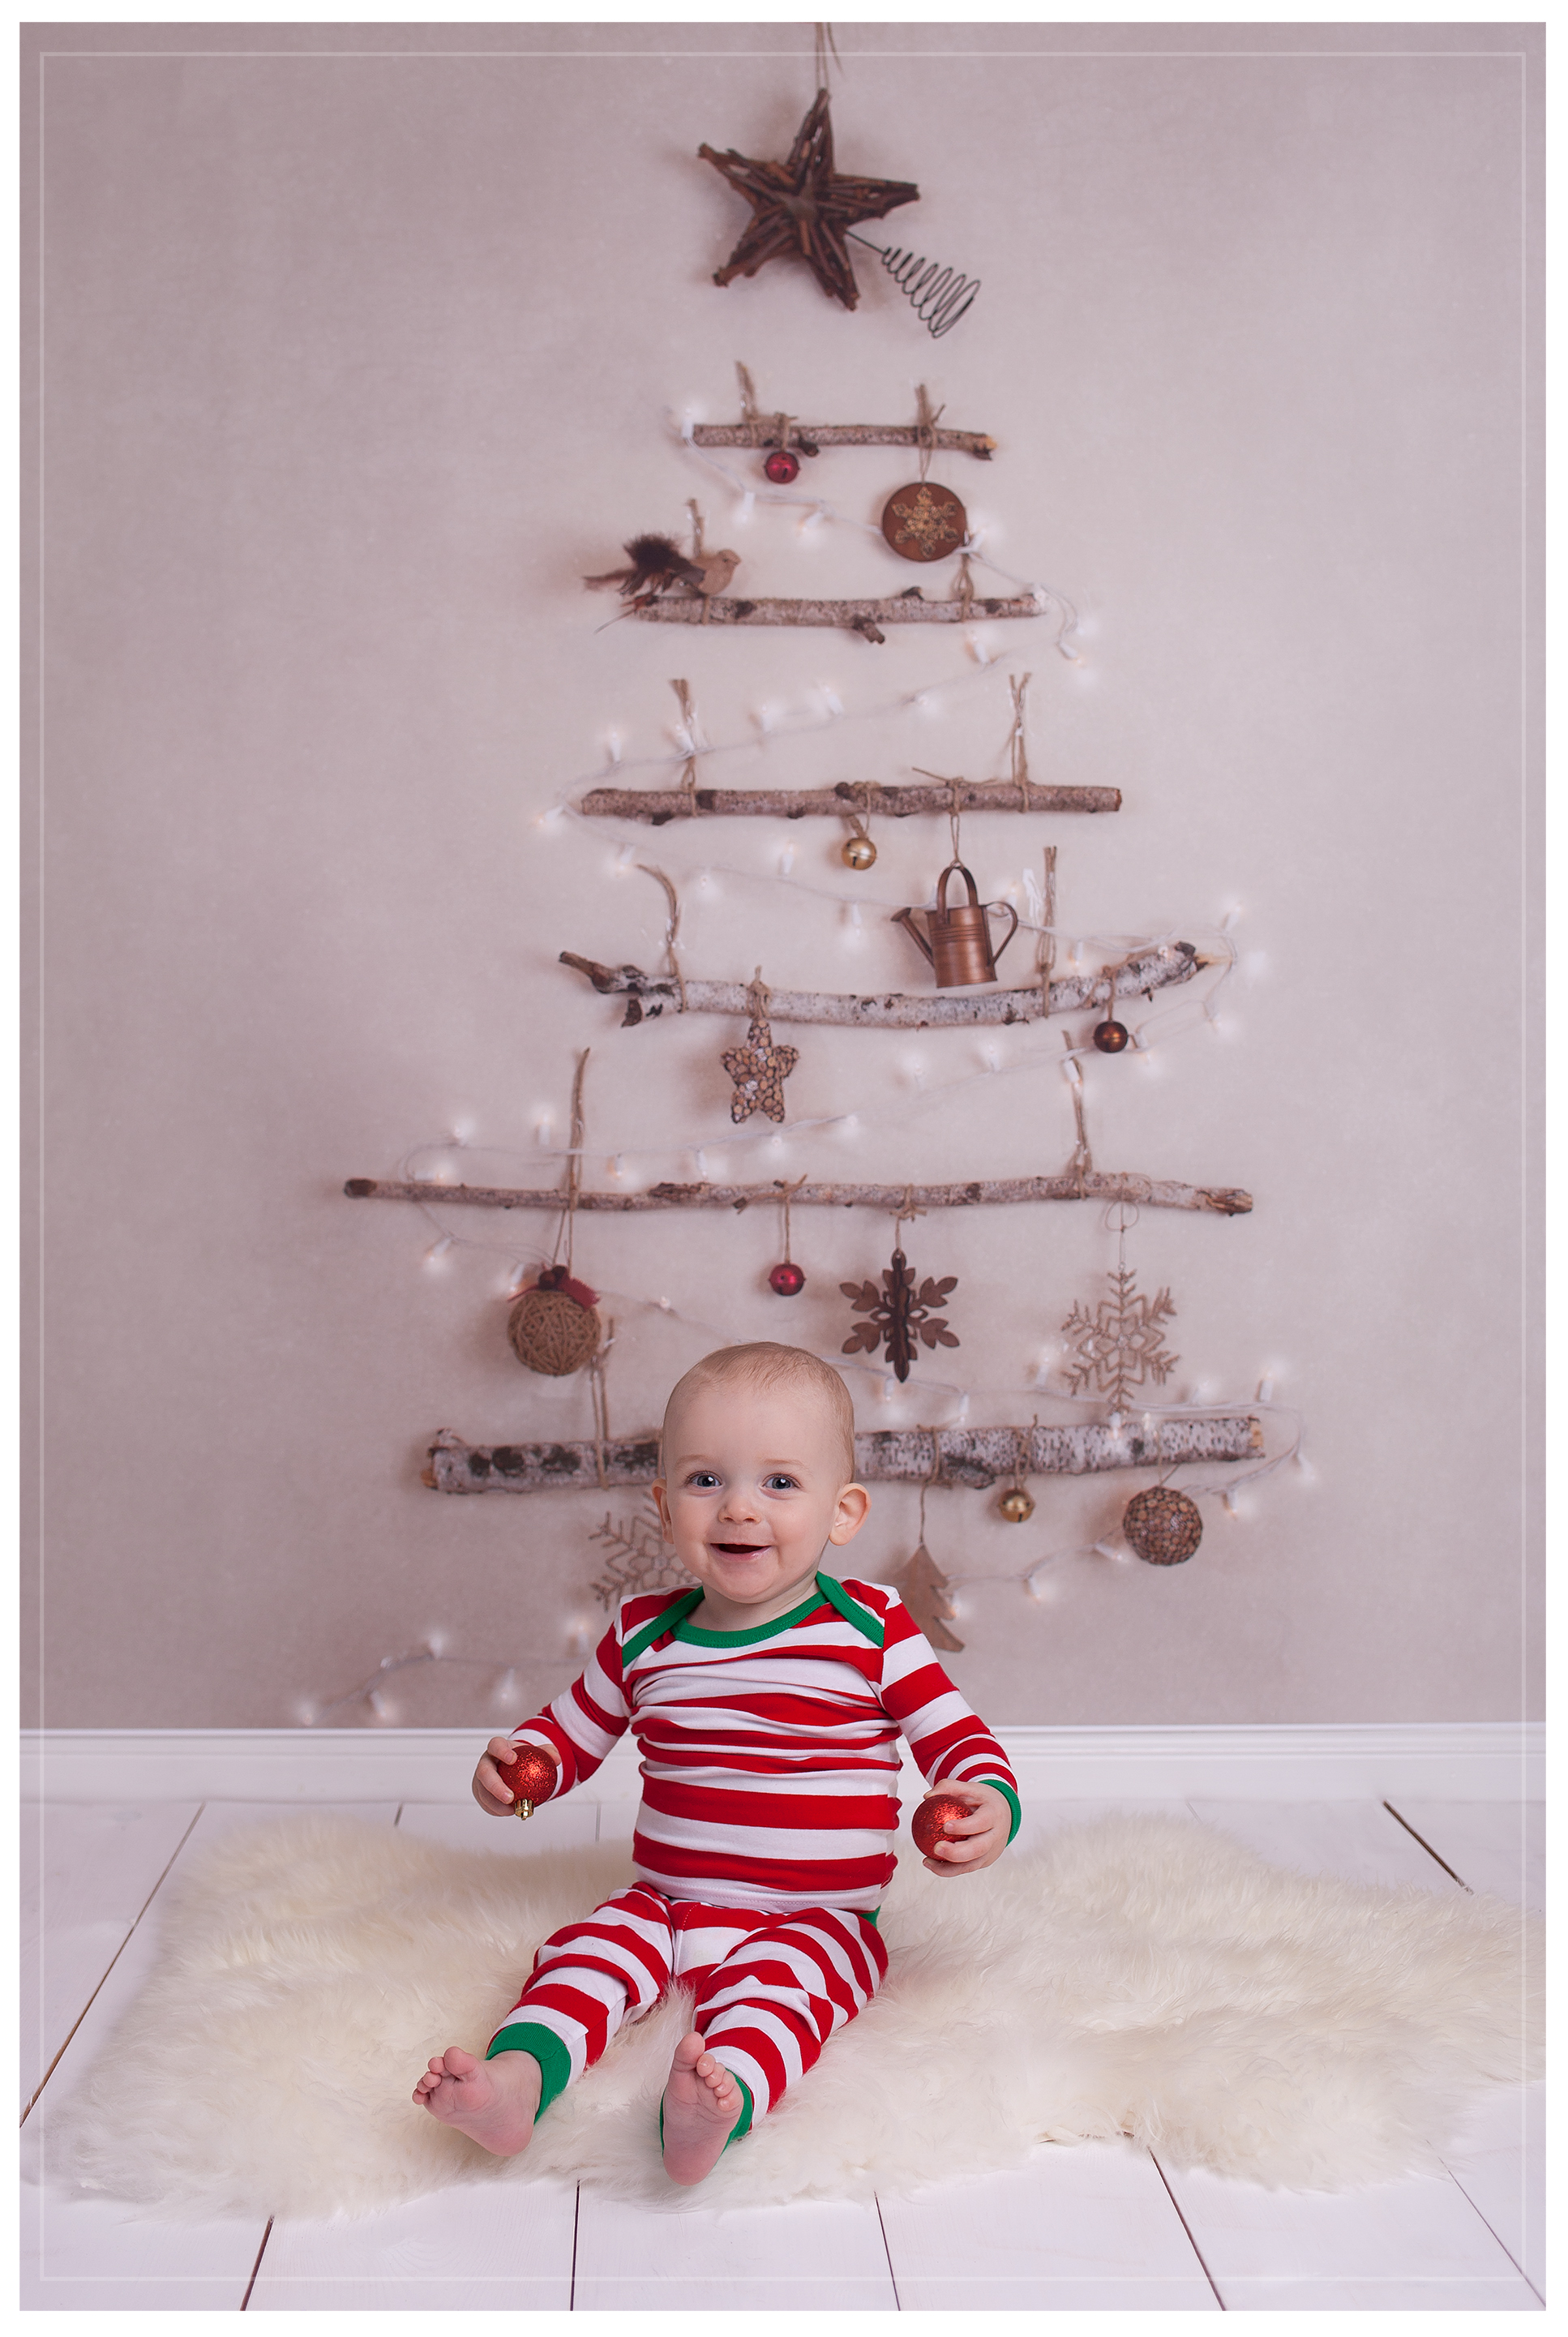 edinburgh christmas photos, edinburgh baby photos, edinburgh photographer, edinburgh newborn photographer, edinburgh kids photographer, baby photos edinburgh